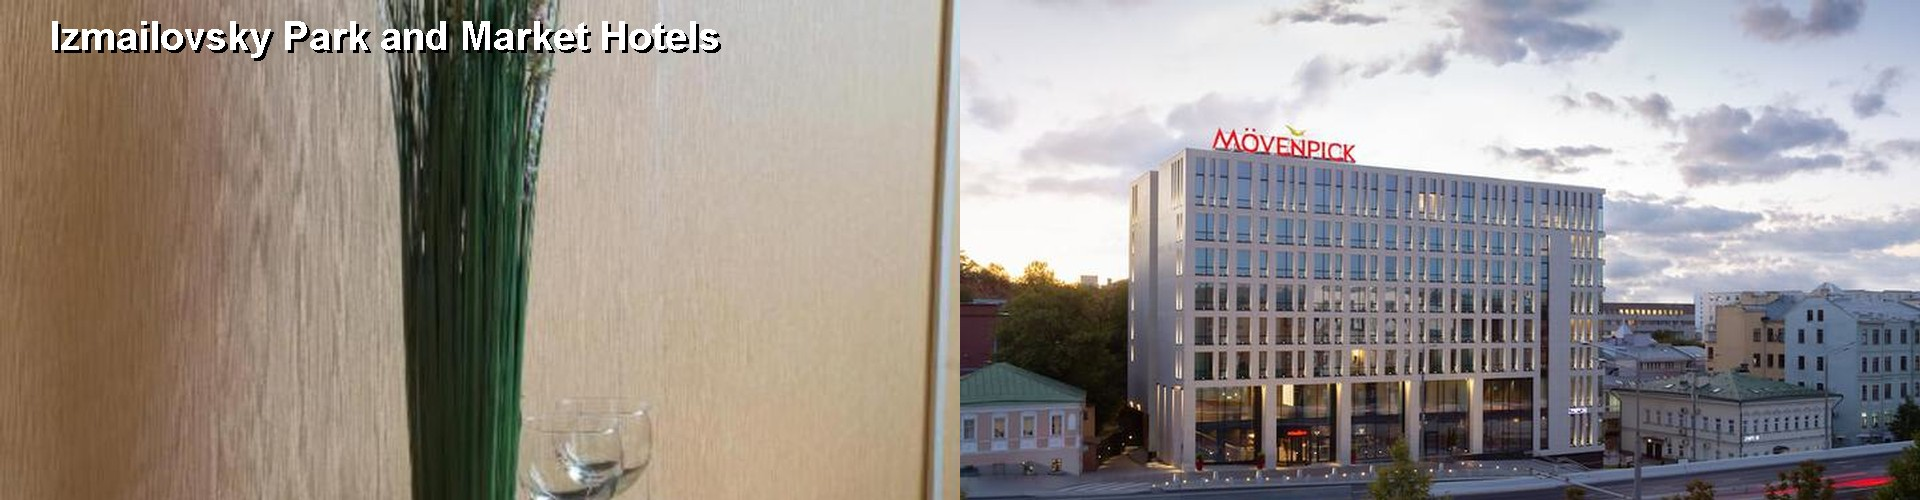 5 Best Hotels near Izmailovsky Park and Market